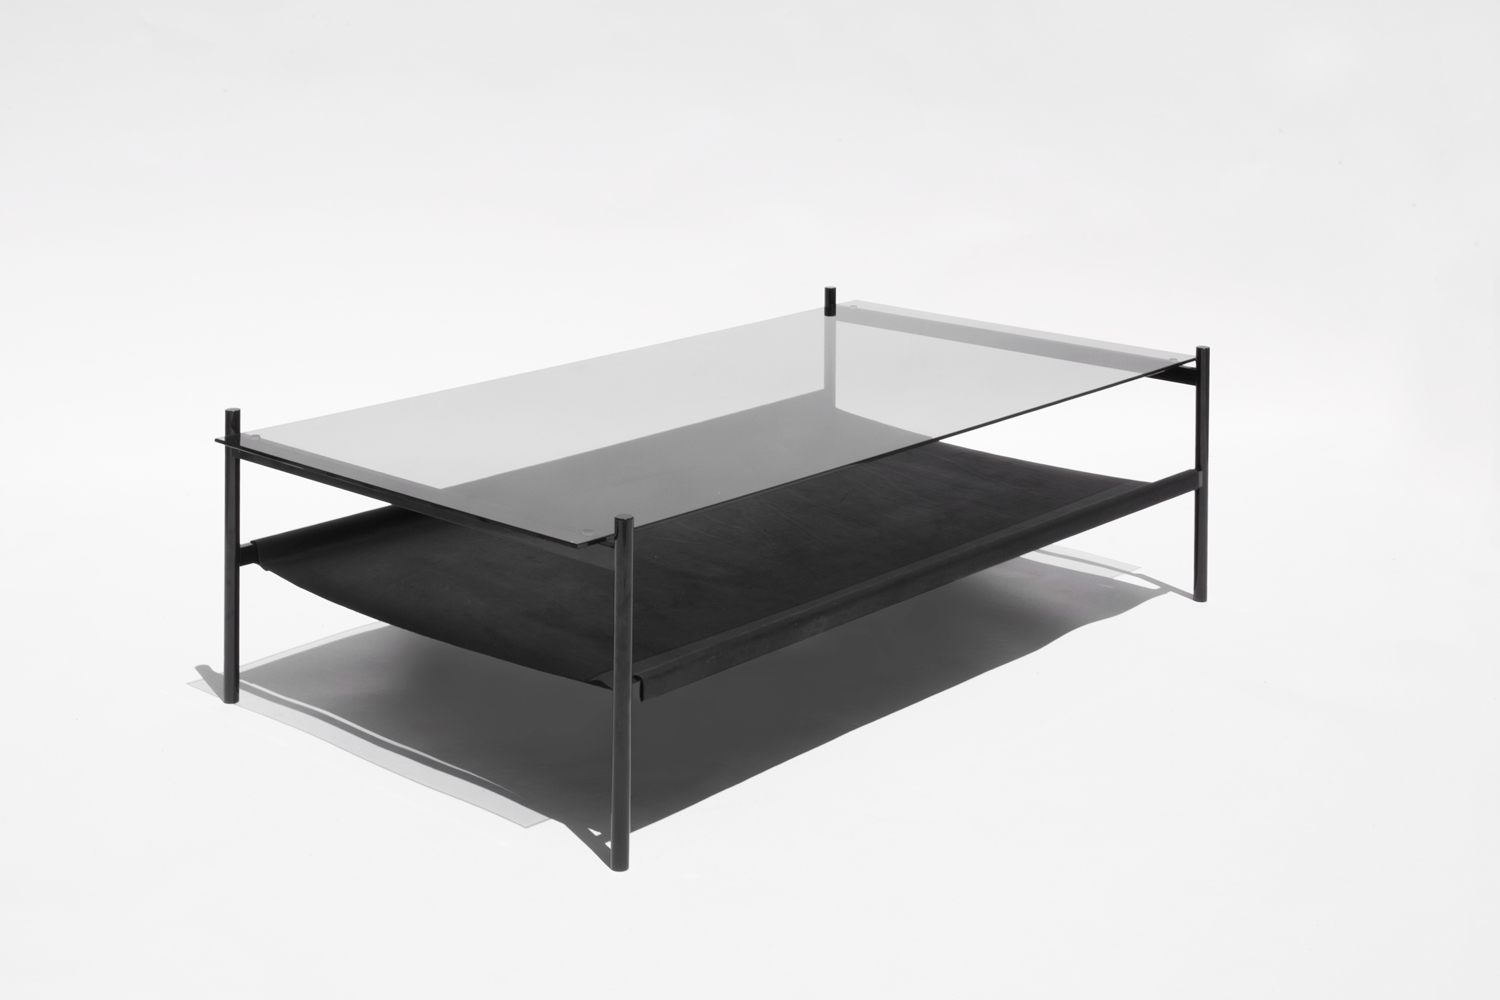 Duotone Rectangular Coffee Table Black Base Smoked Glass